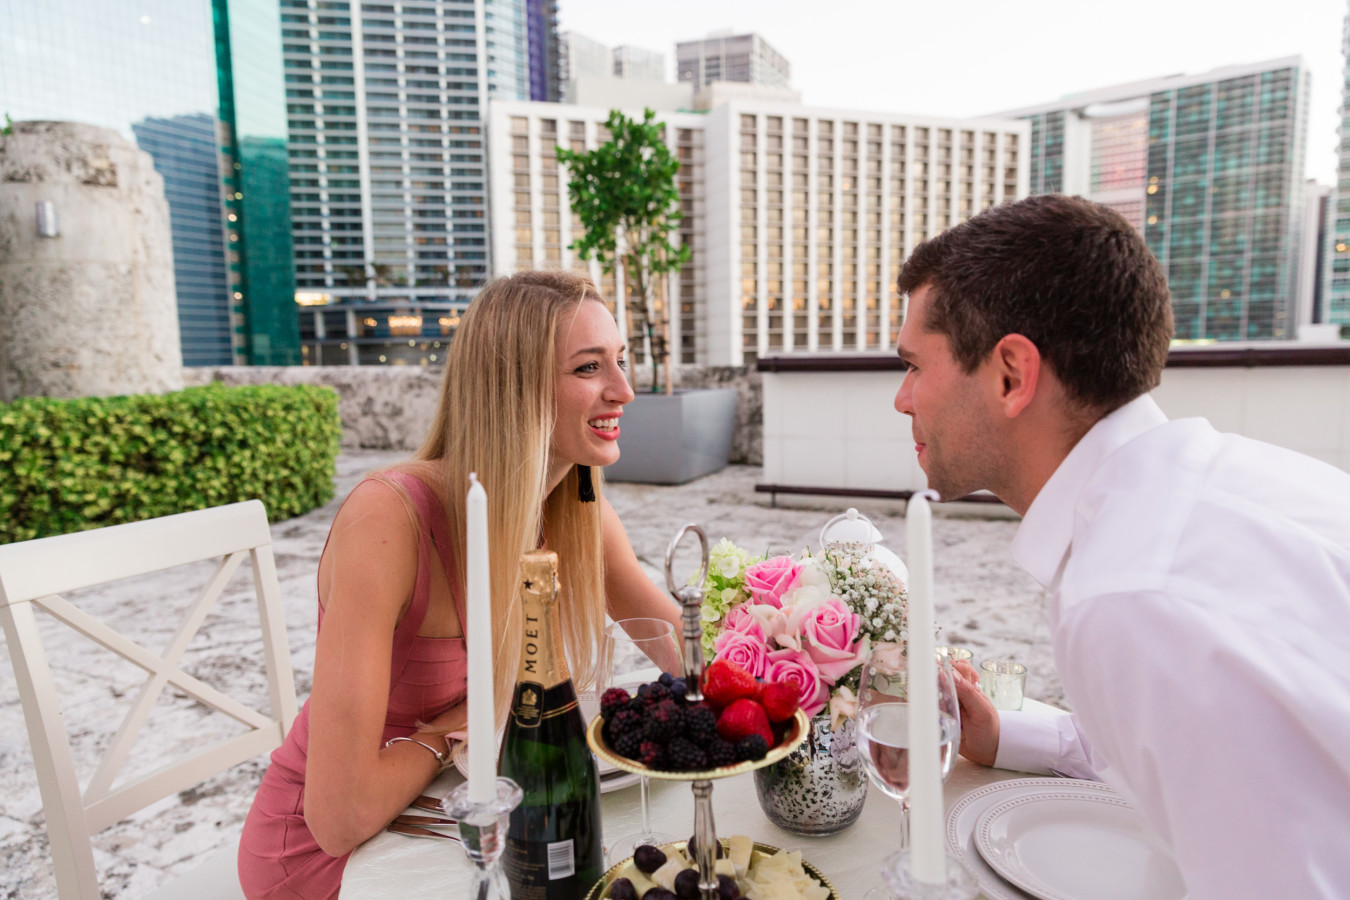 Rooftop dinner in Miami